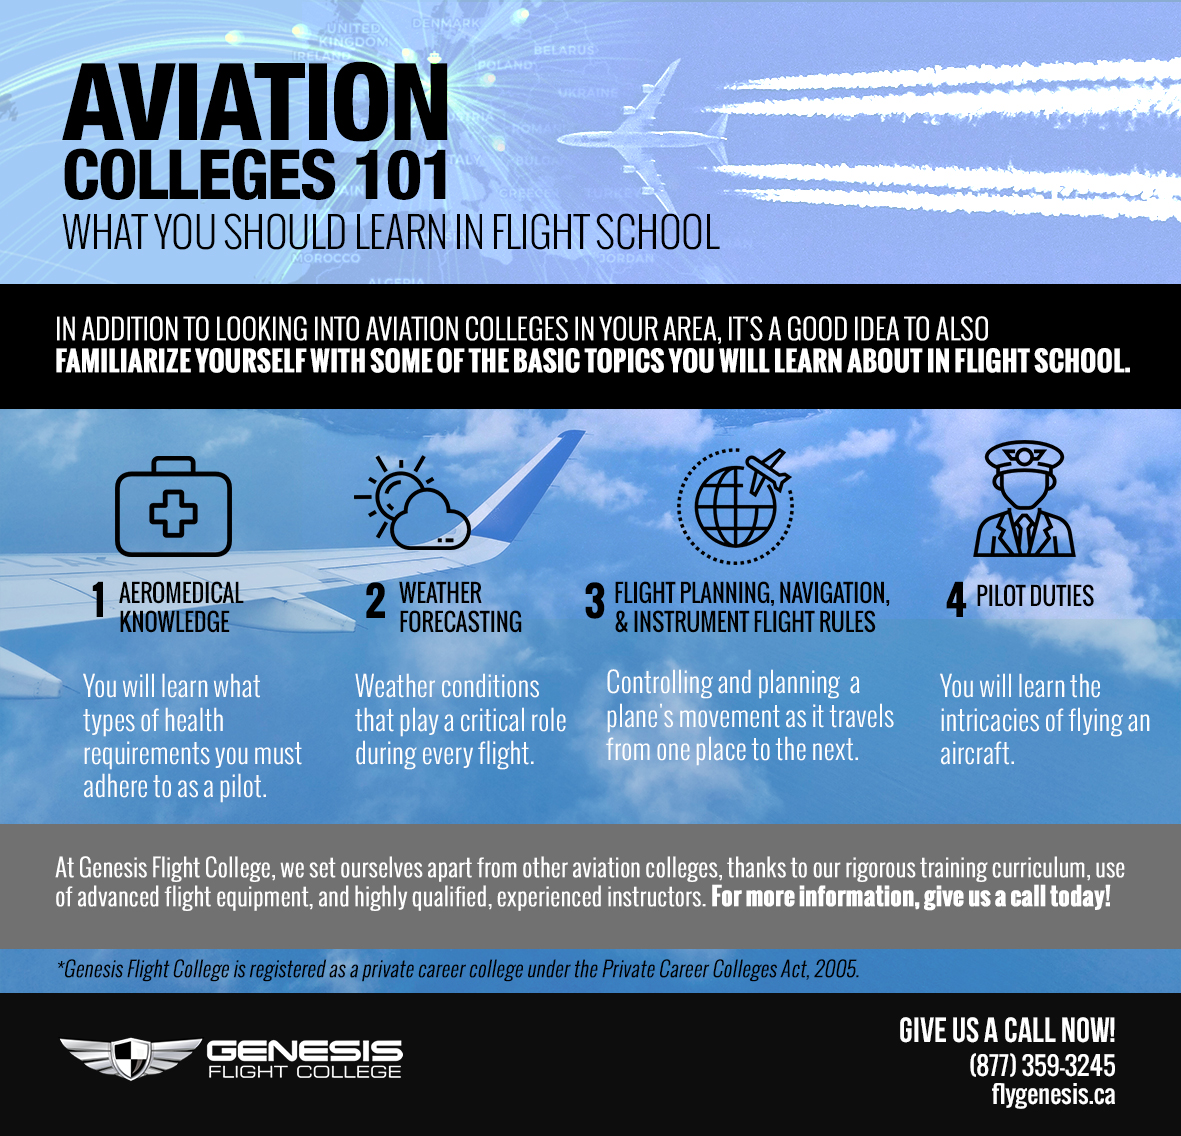 Aviation Colleges 101: What You Should Learn in Flight School